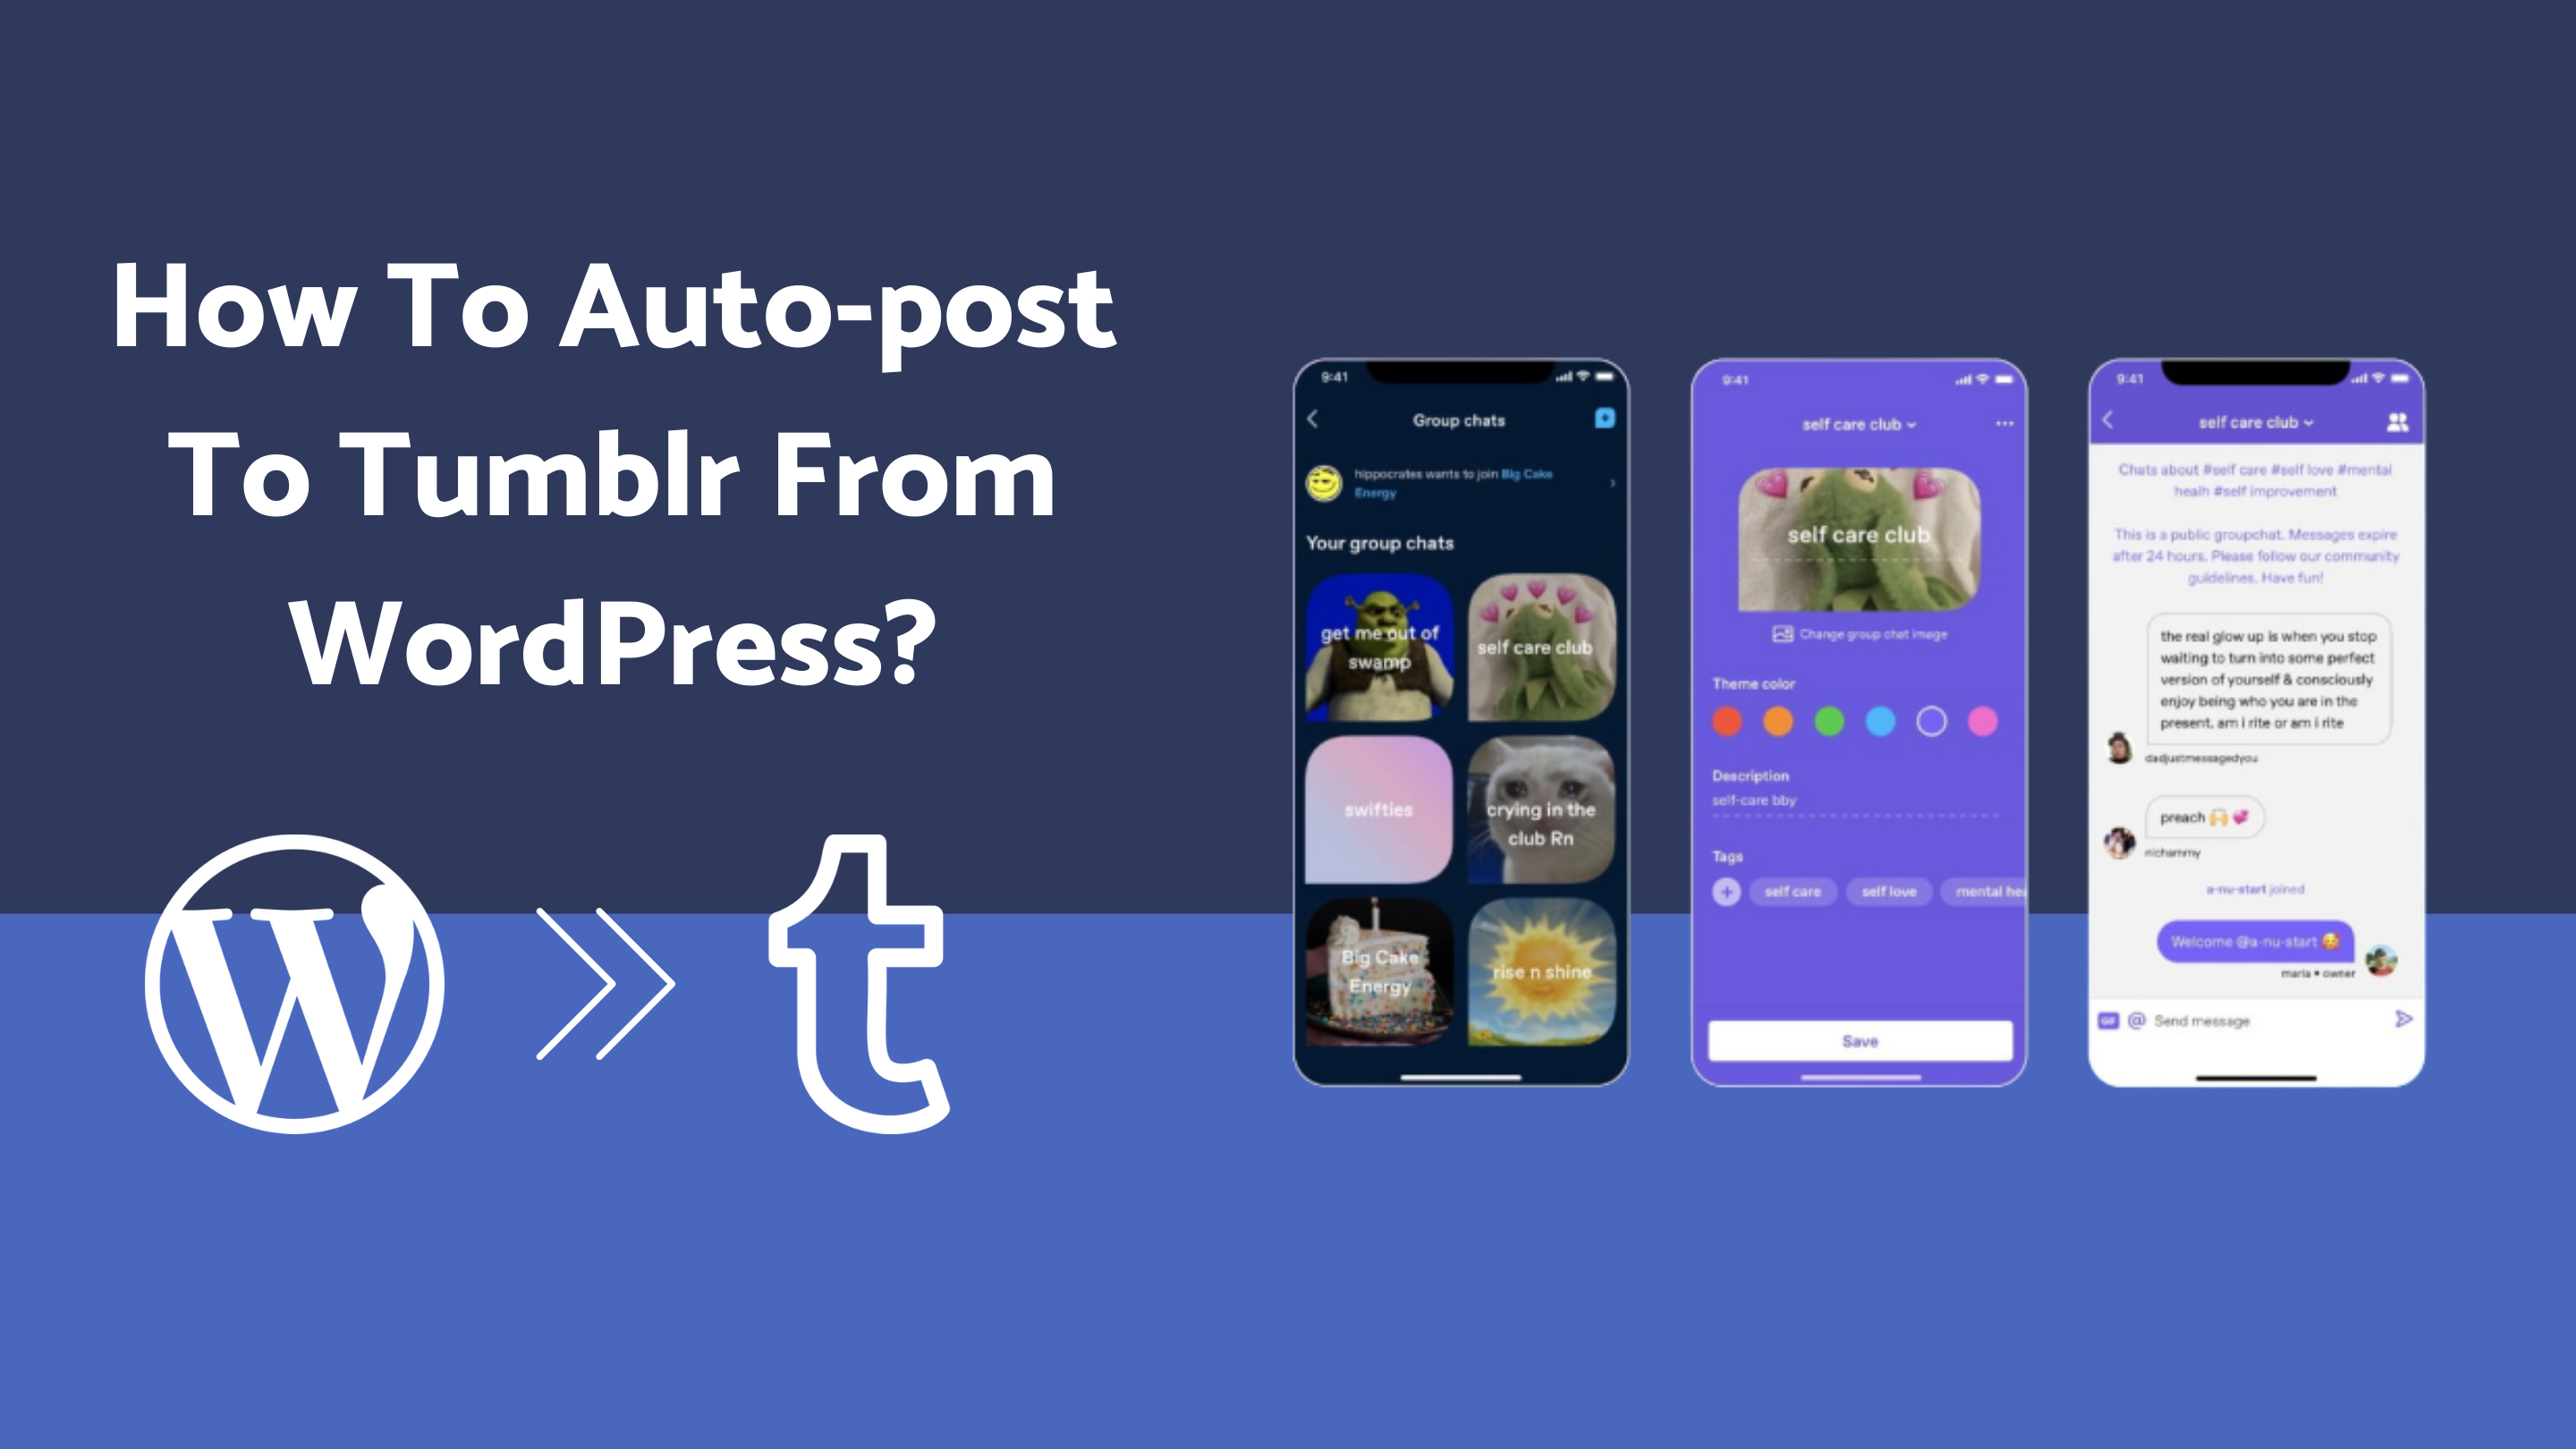 How To Auto-Post To Tumblr From WordPress [A Complete Guide]